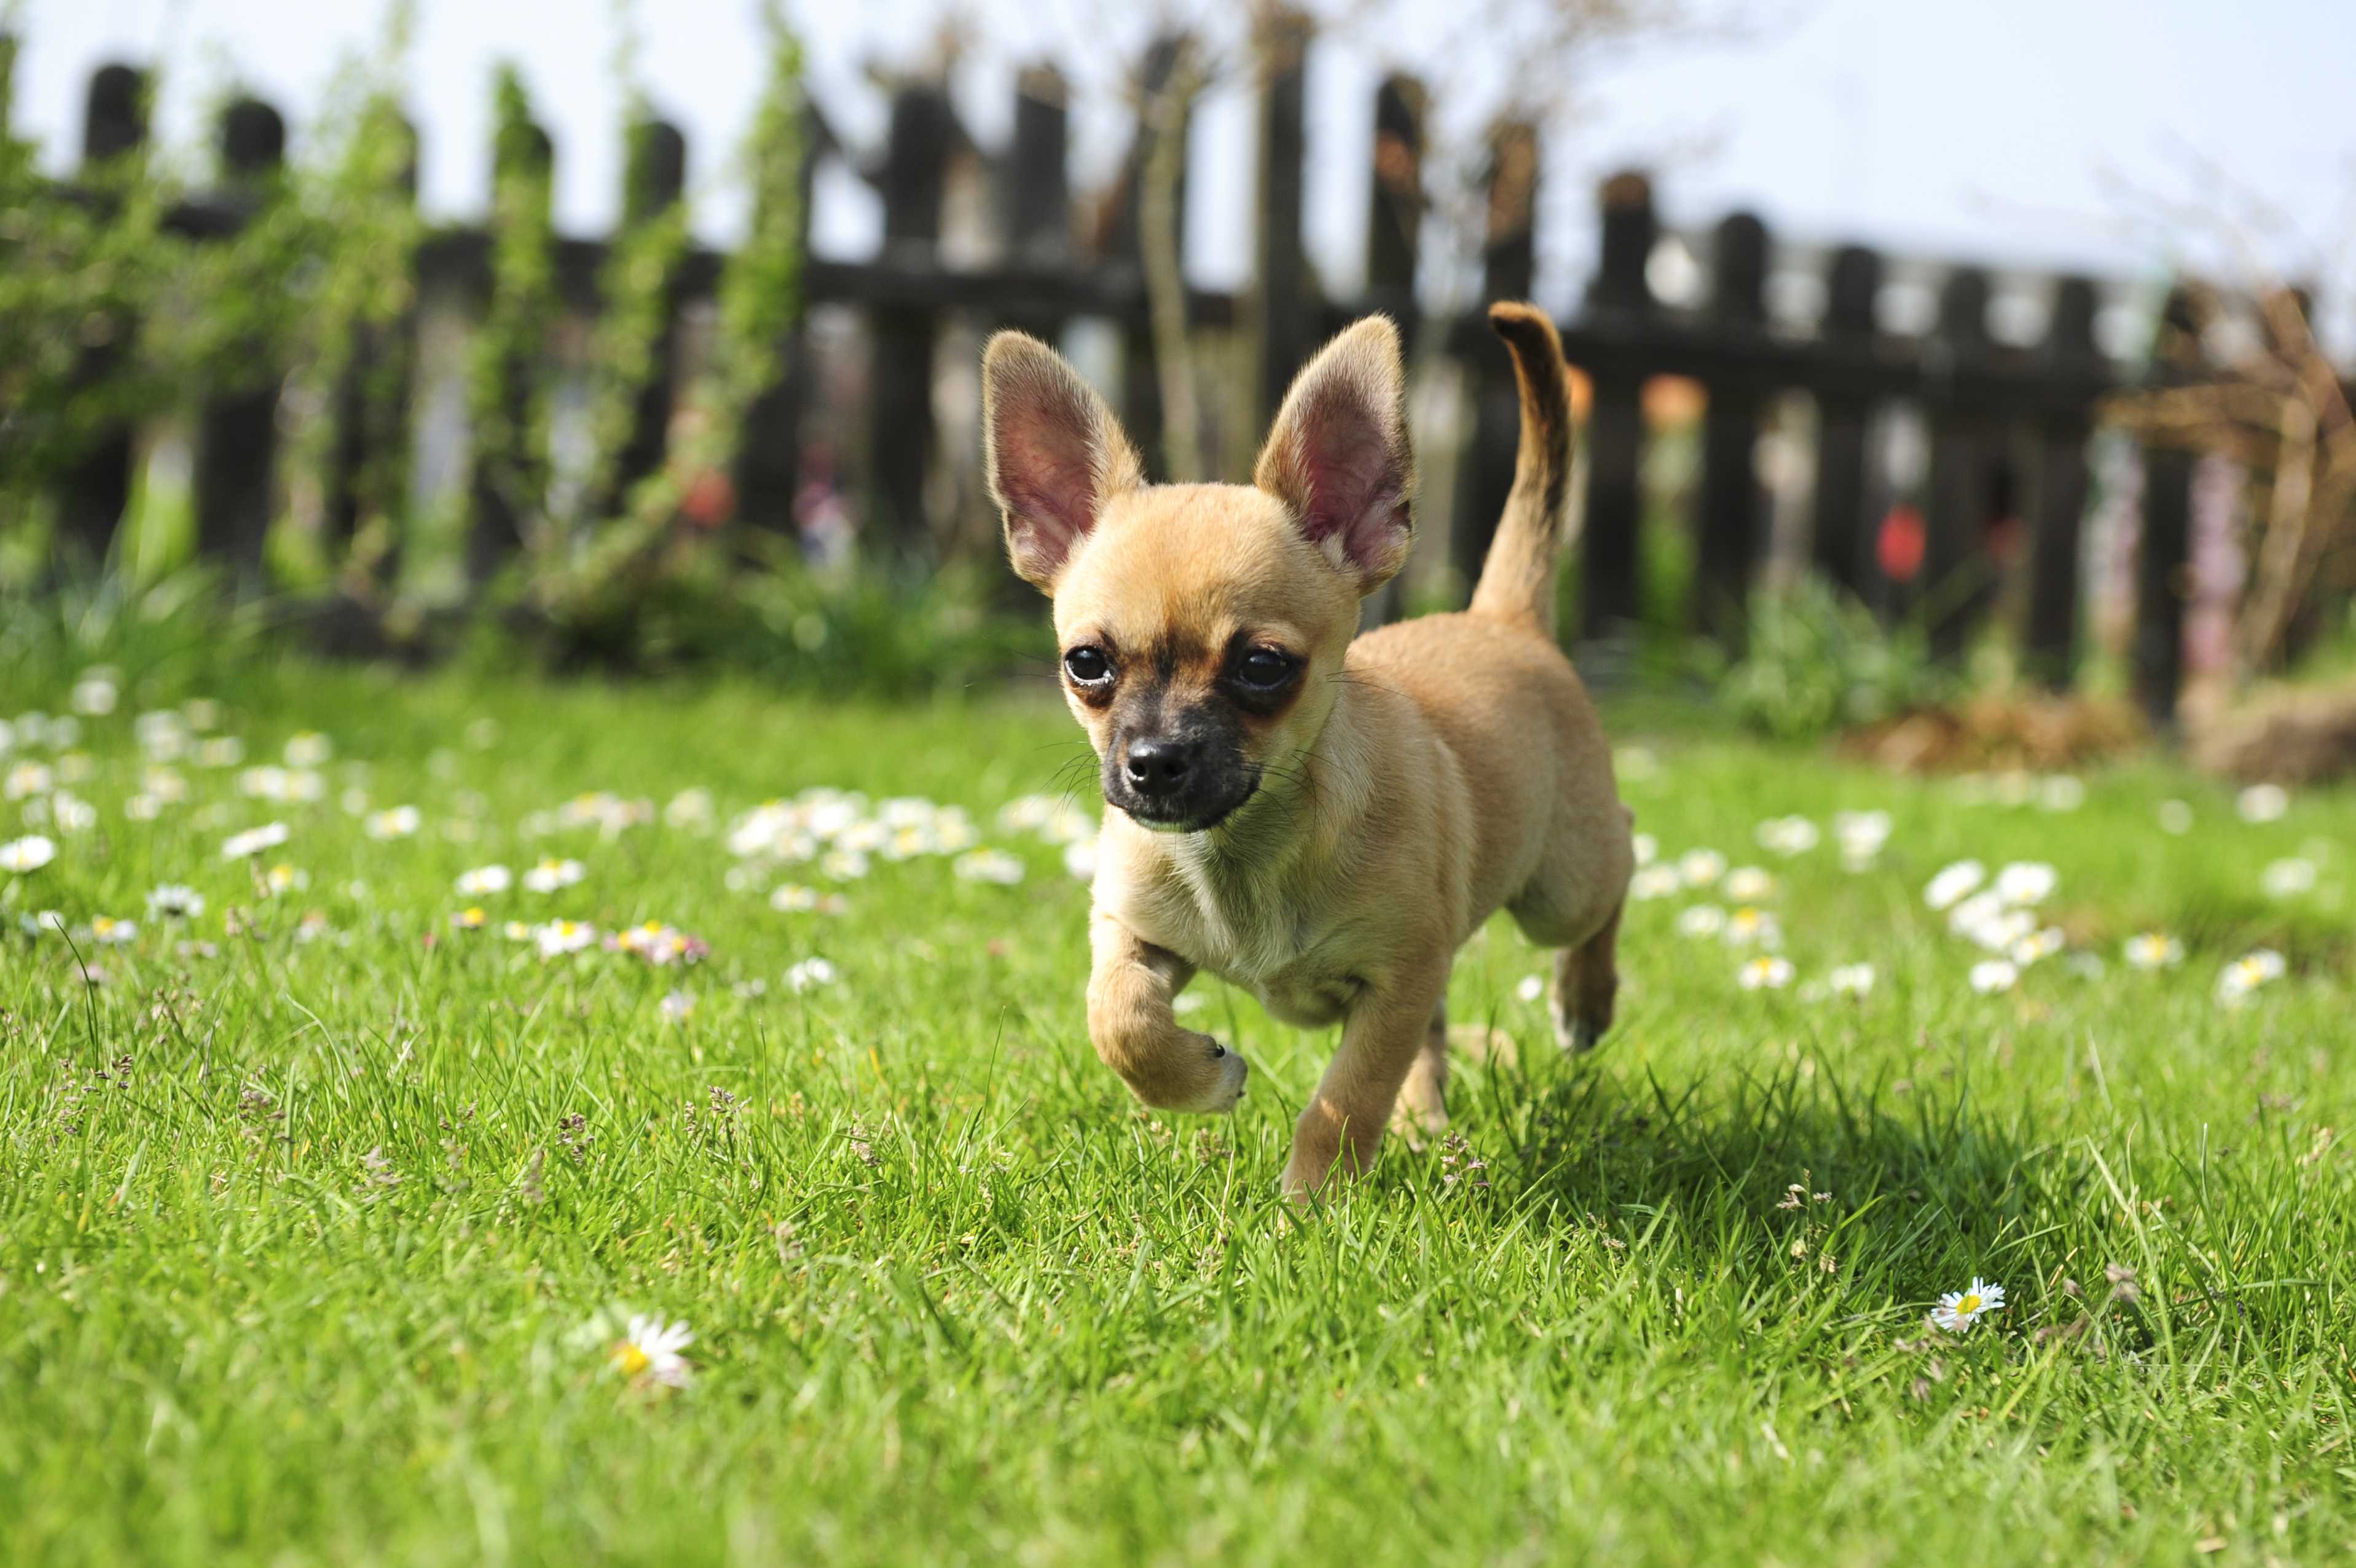 Study highlights common health problems in Chihuahuas